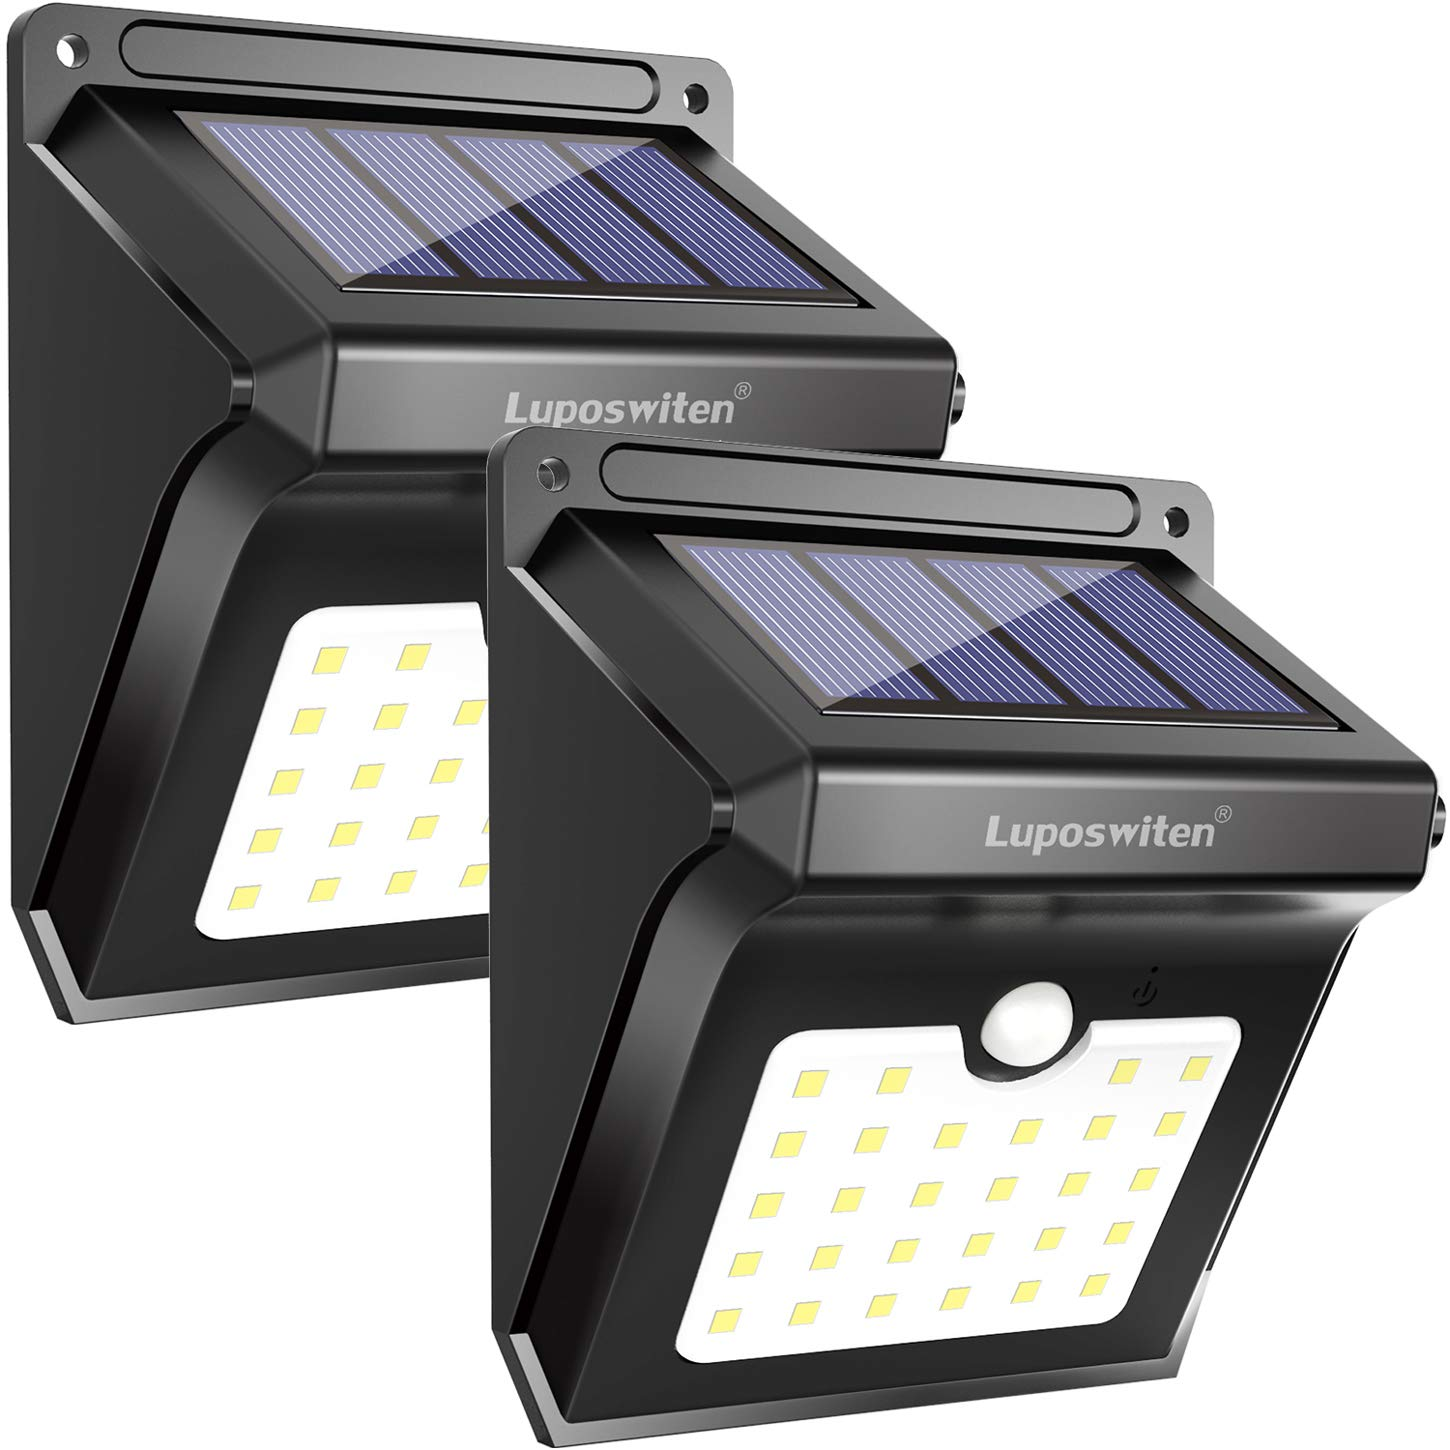 Luposwiten Solar Lights Outdoor 28 LEDs Motion Sensor Wireless Waterproof Security Light, Solar Lights for Patio, Yard, Driveway, Garage, Pathway, 2 Pack